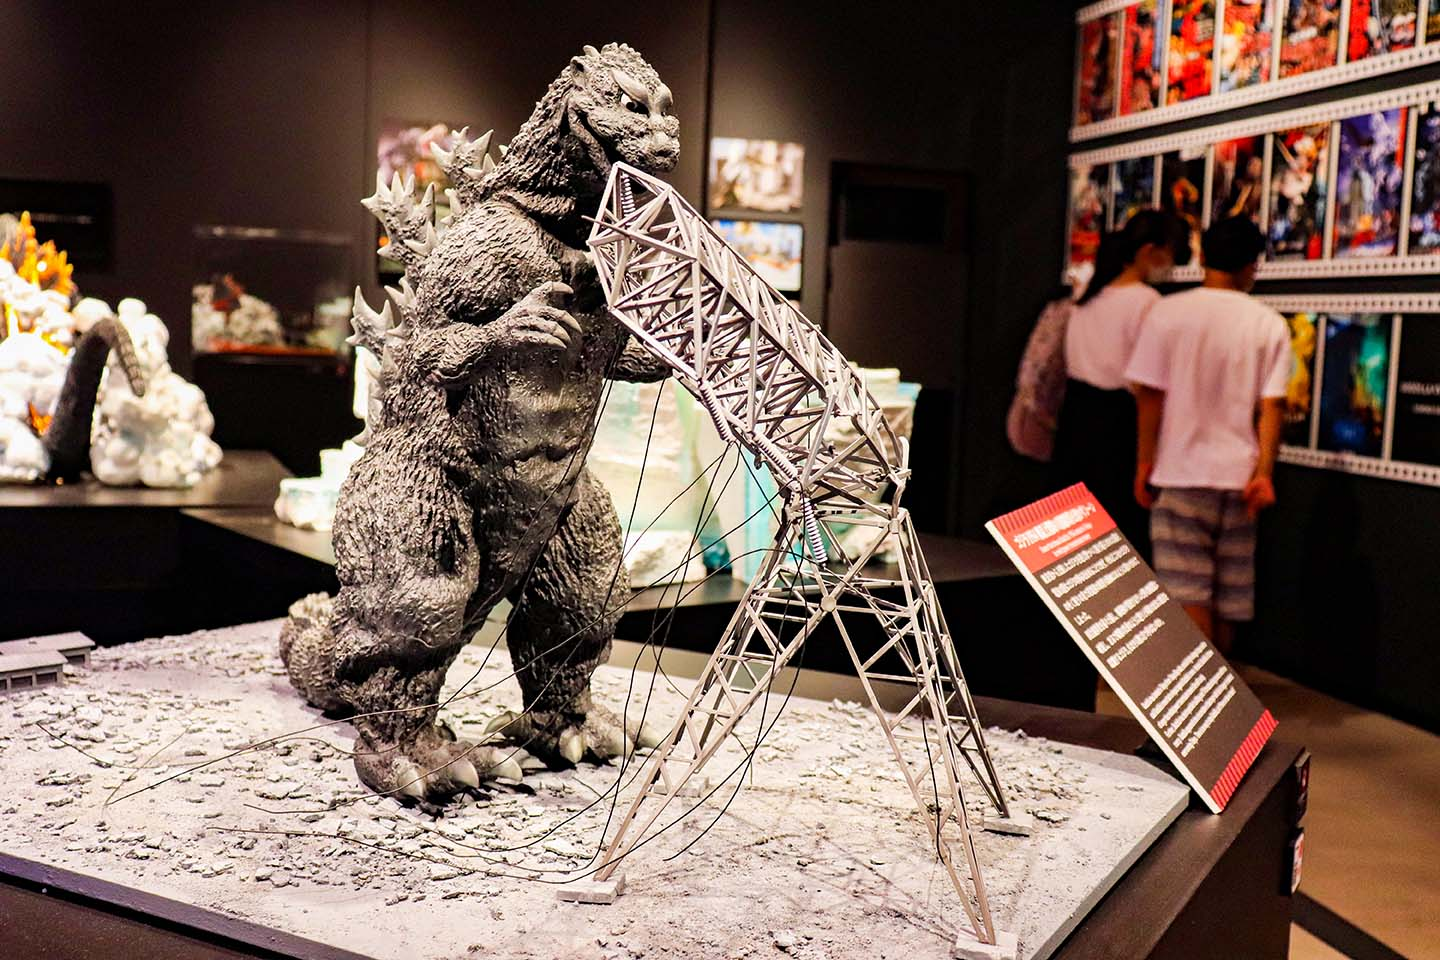 Sneak Preview of the world's first permanent Godzilla Museum